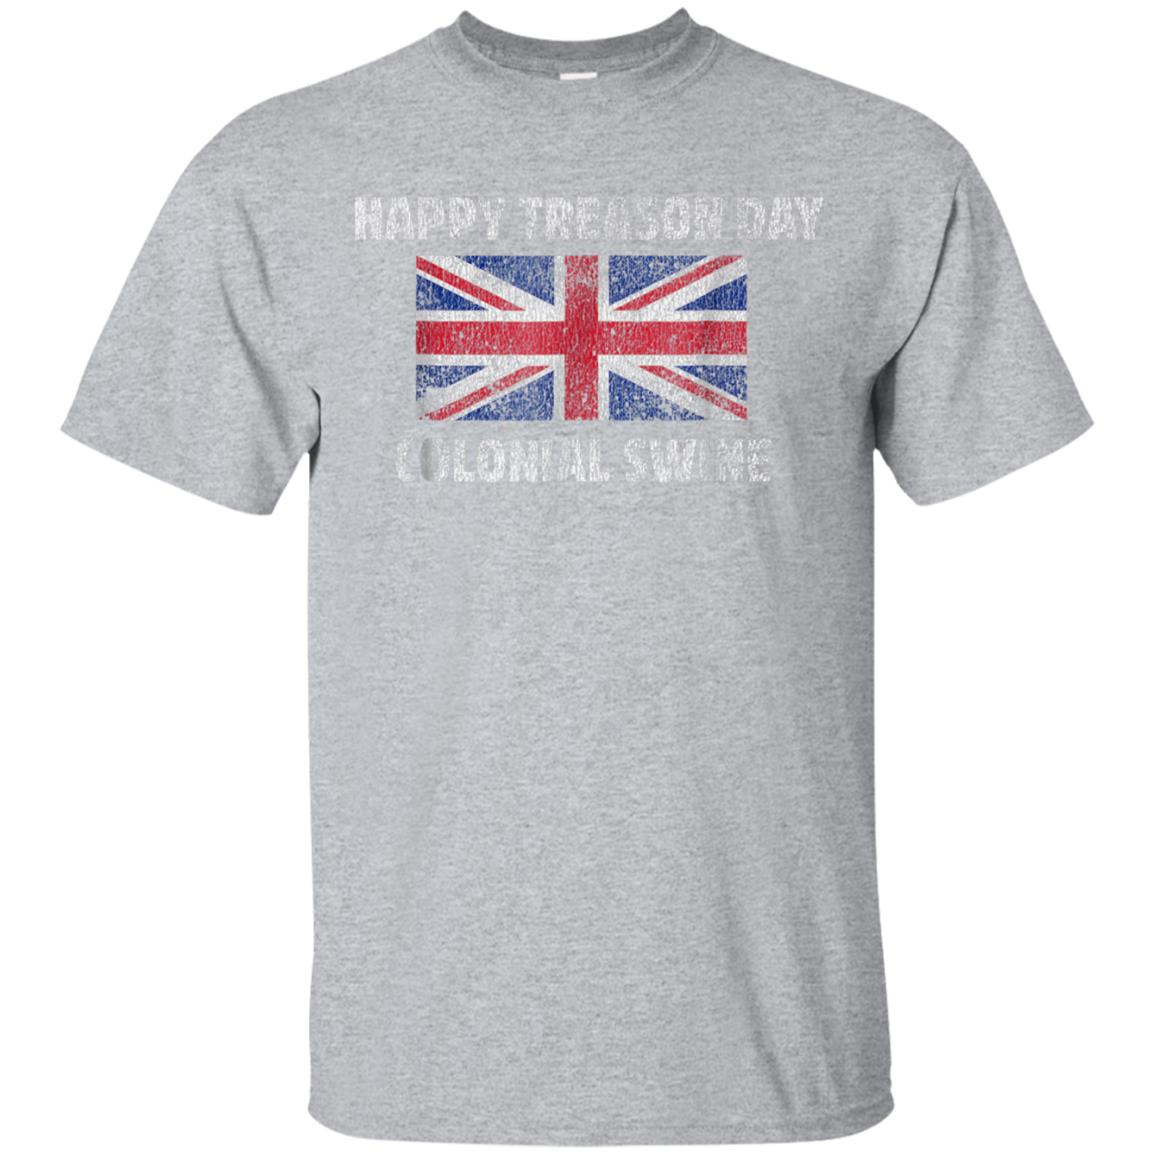 Happy Treason Day Colonial Swine T-Shirt, Sarcastic T Shirts 99promocode